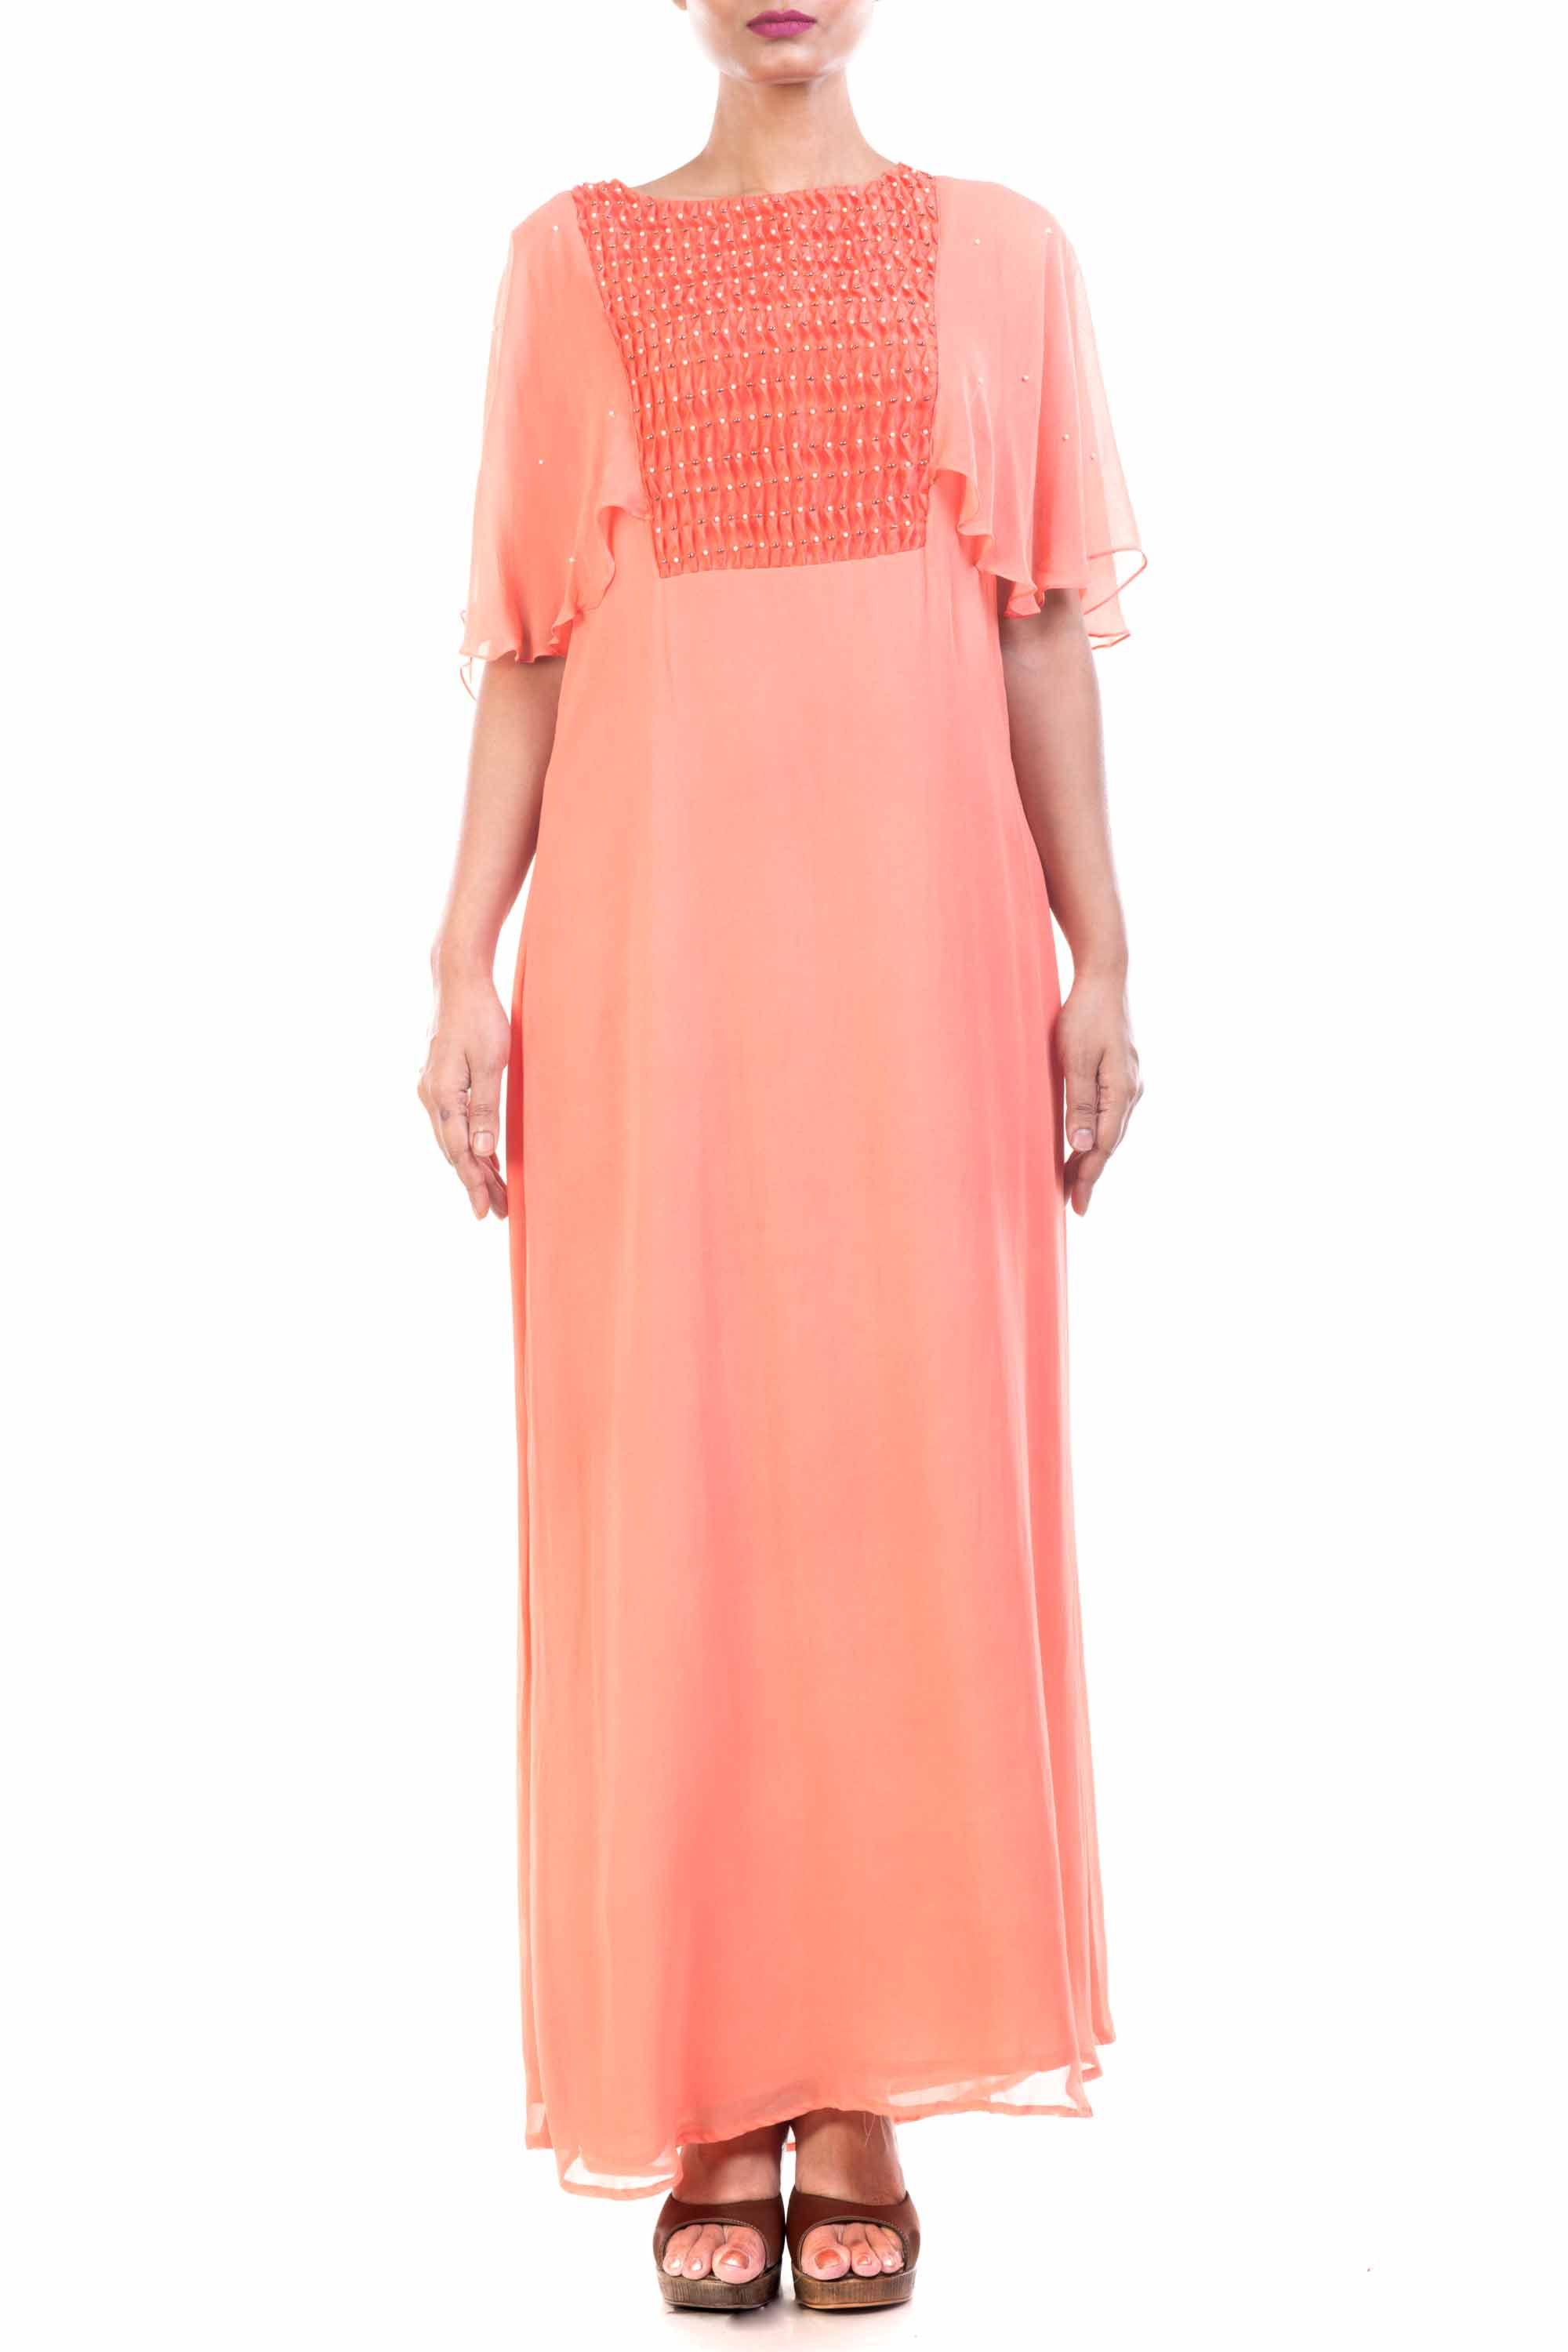 Peach Long Tunic With Cape Sleeves Front